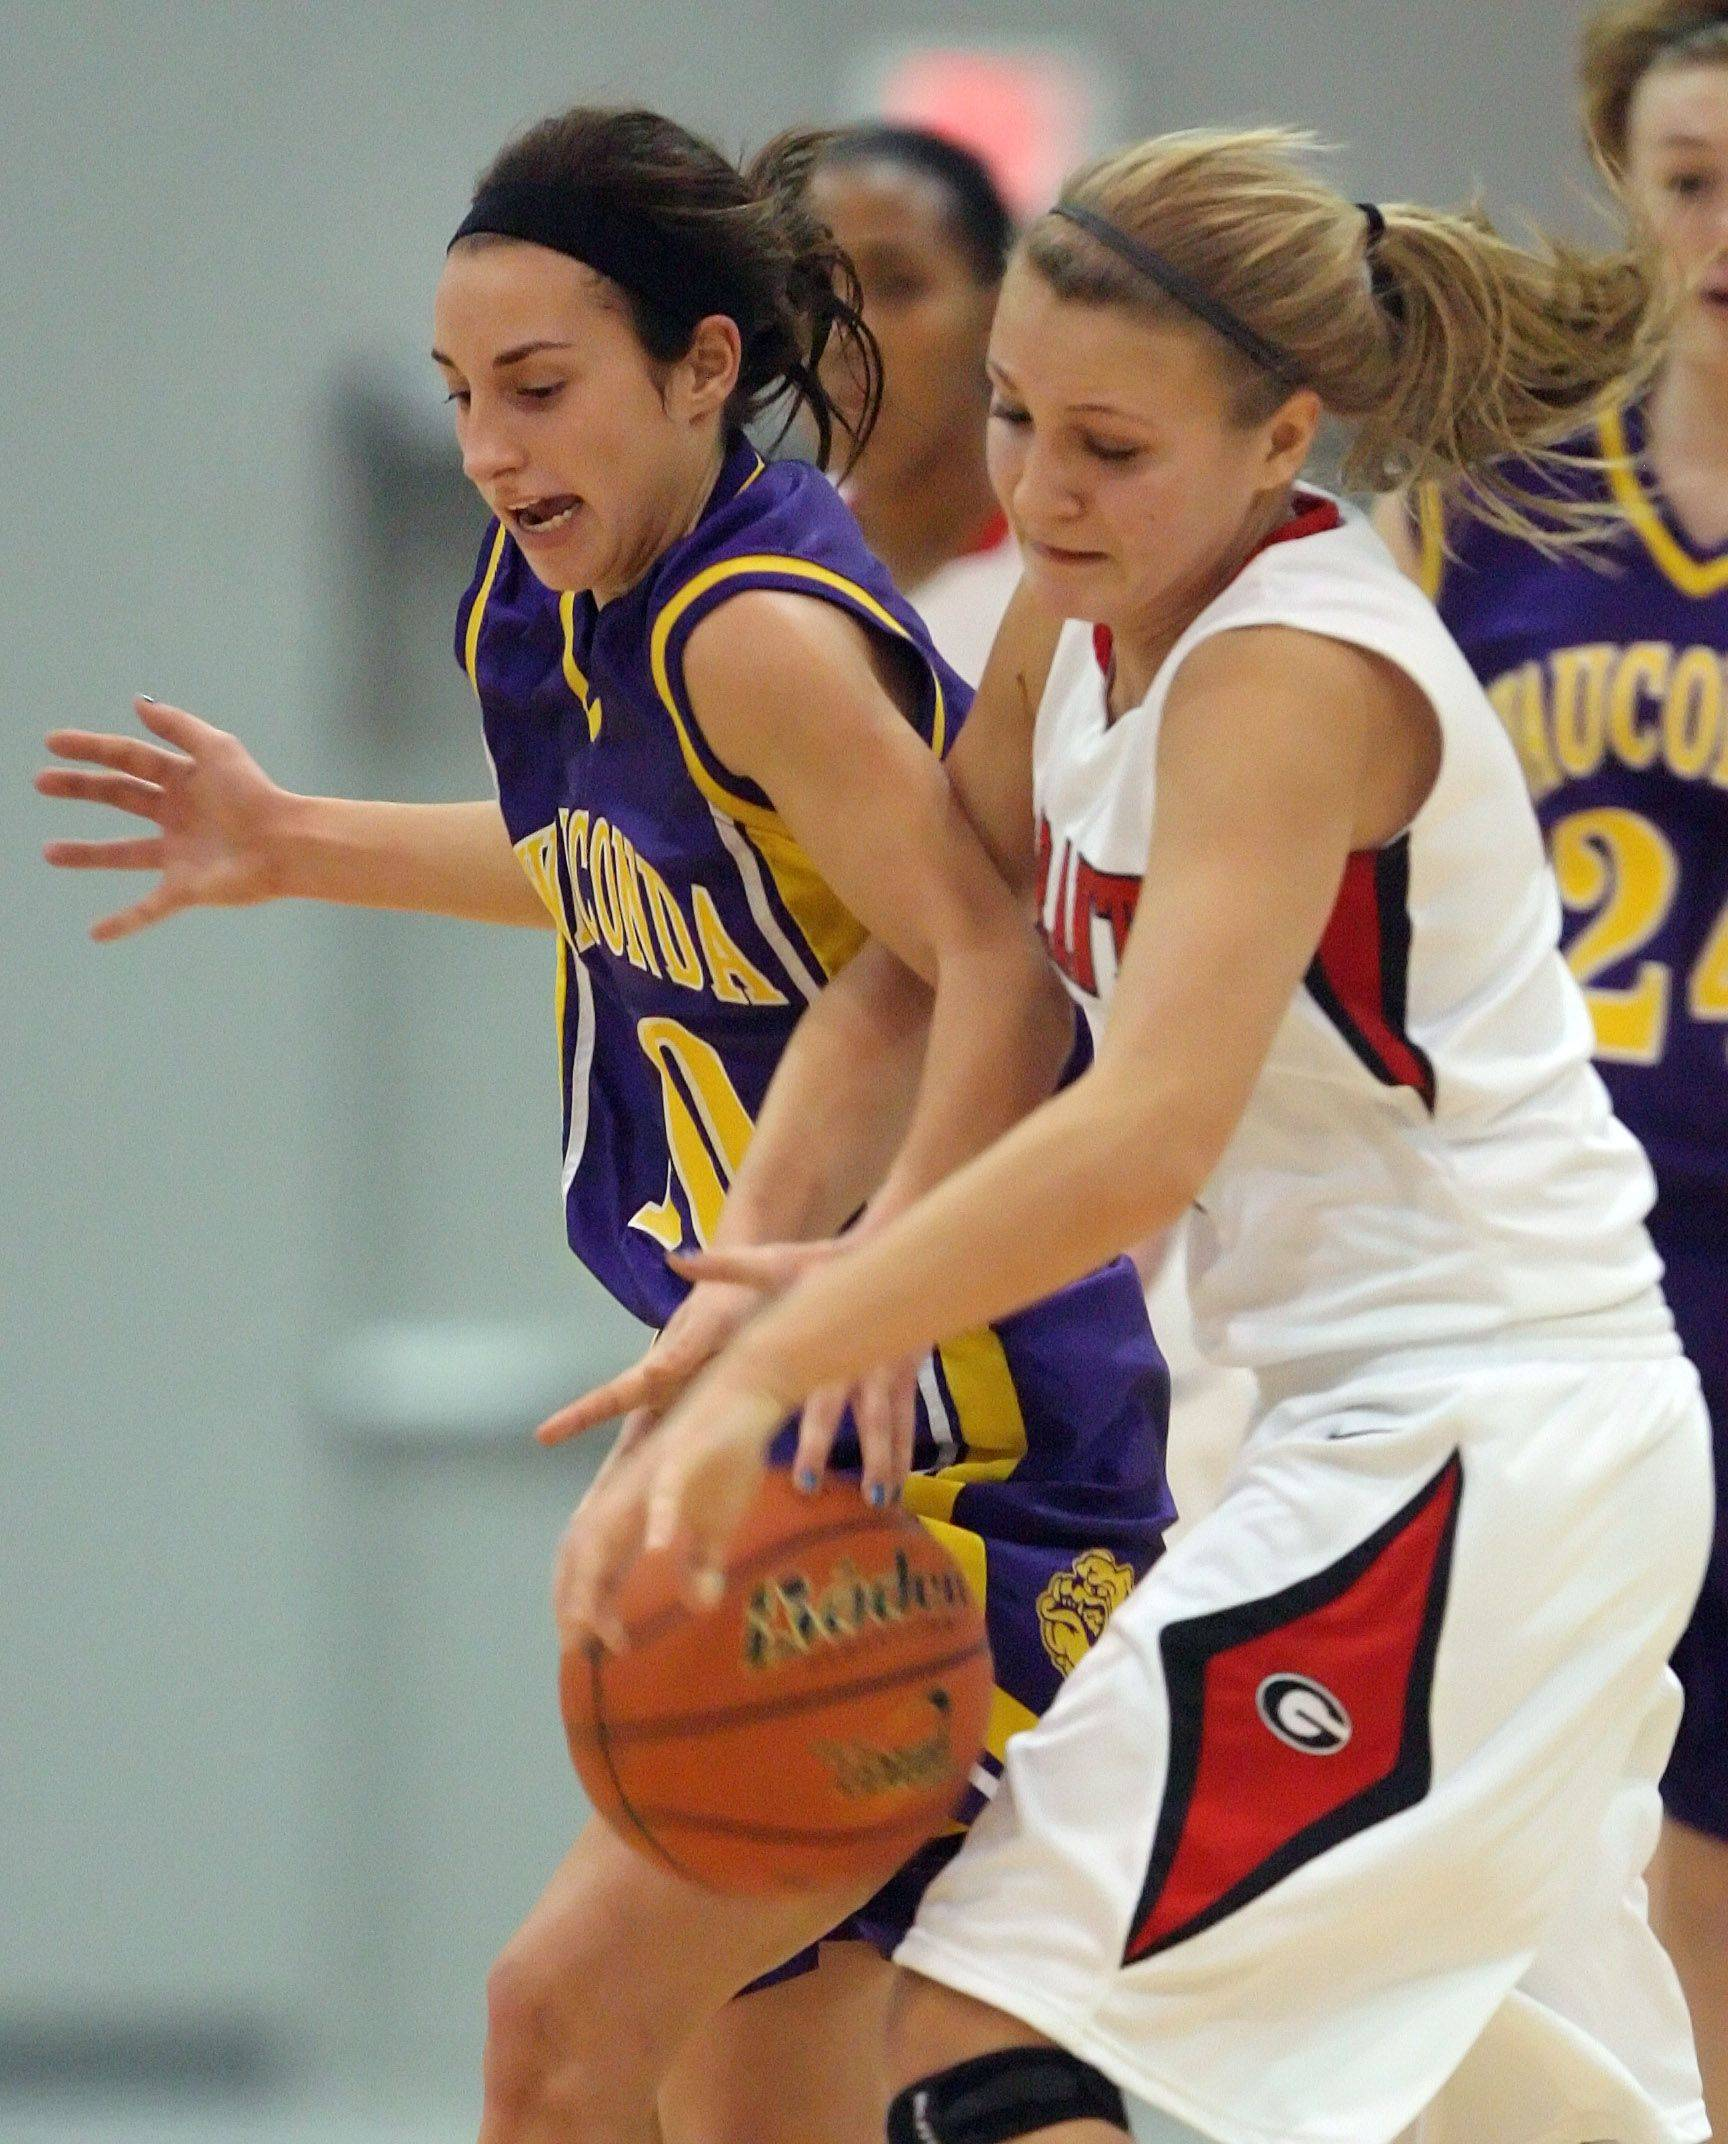 Wauconda's Melanie Prudhomme, left, and Grant's Morgan Jahnke battle for a loose ball Tuesday in Fox Lake.